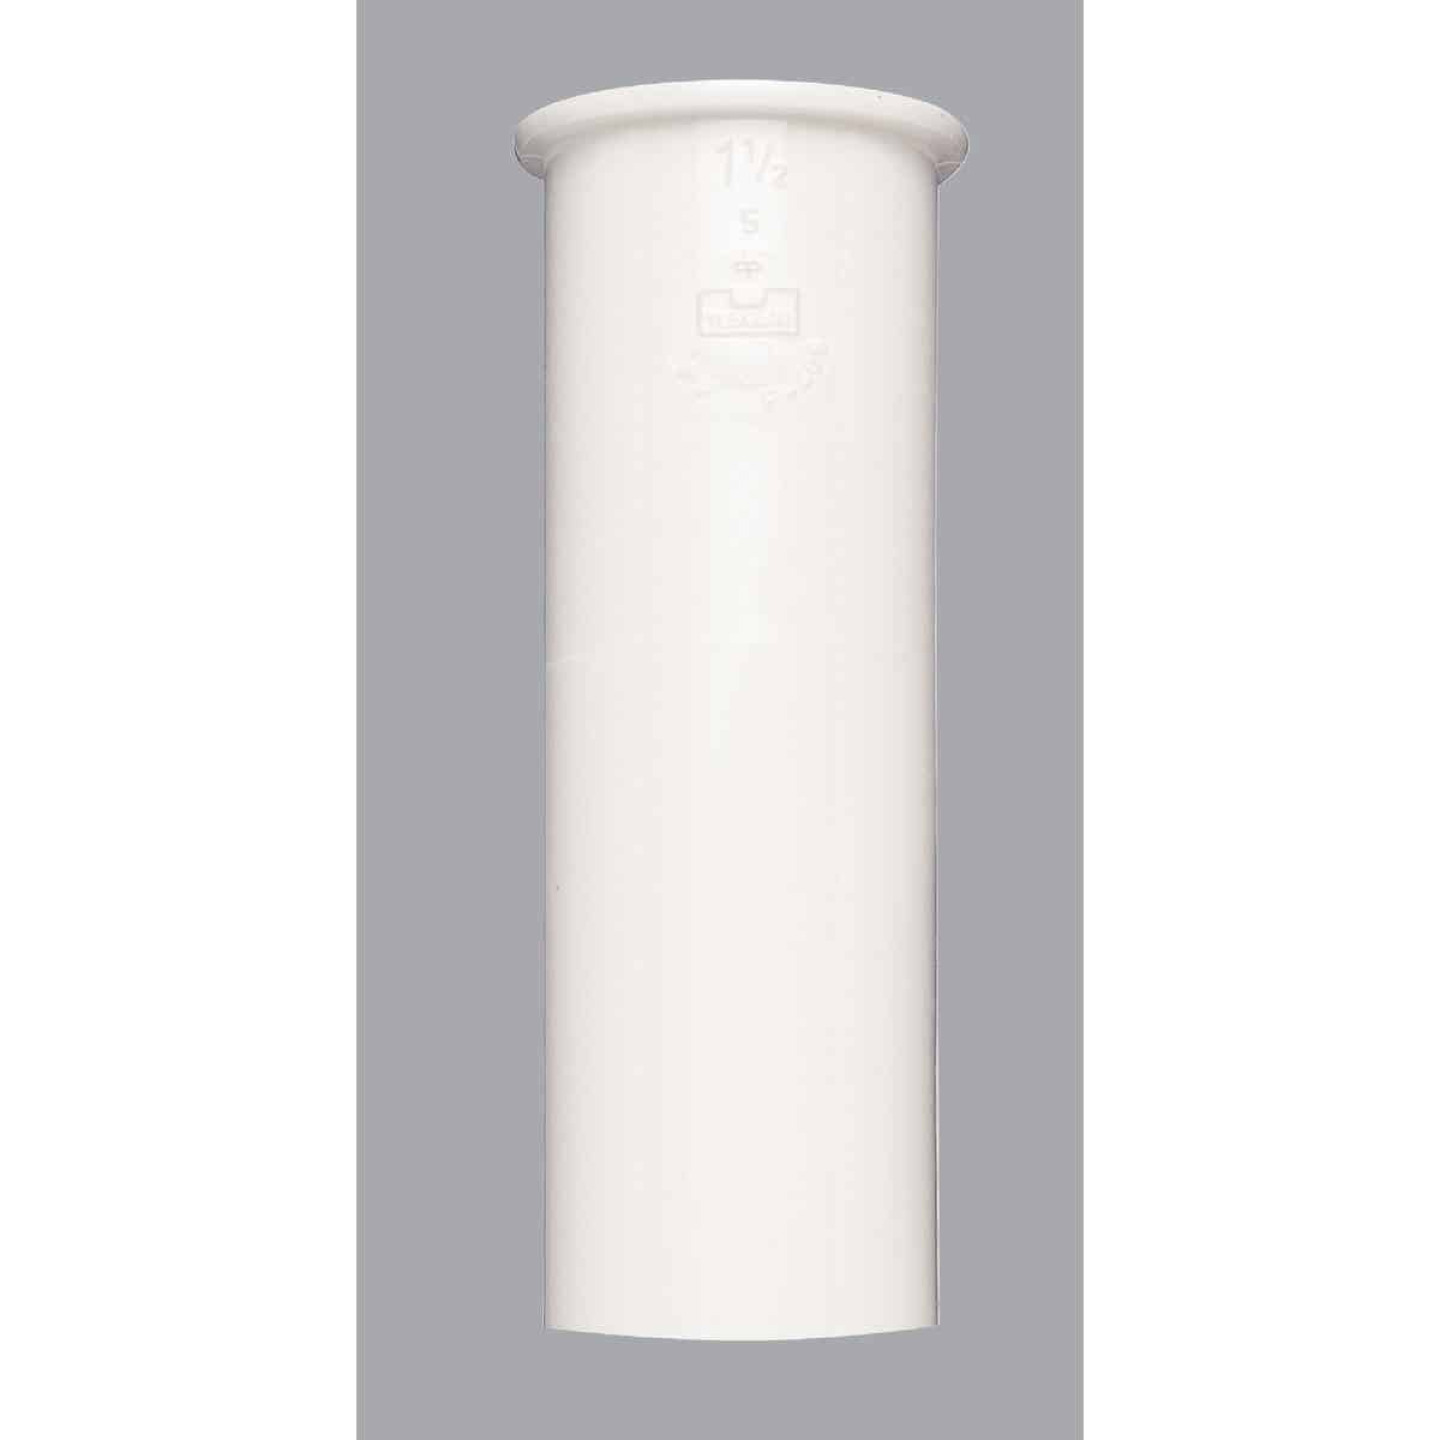 Do it 1-1/2 In. x 6 In. White Plastic Tailpiece Image 1